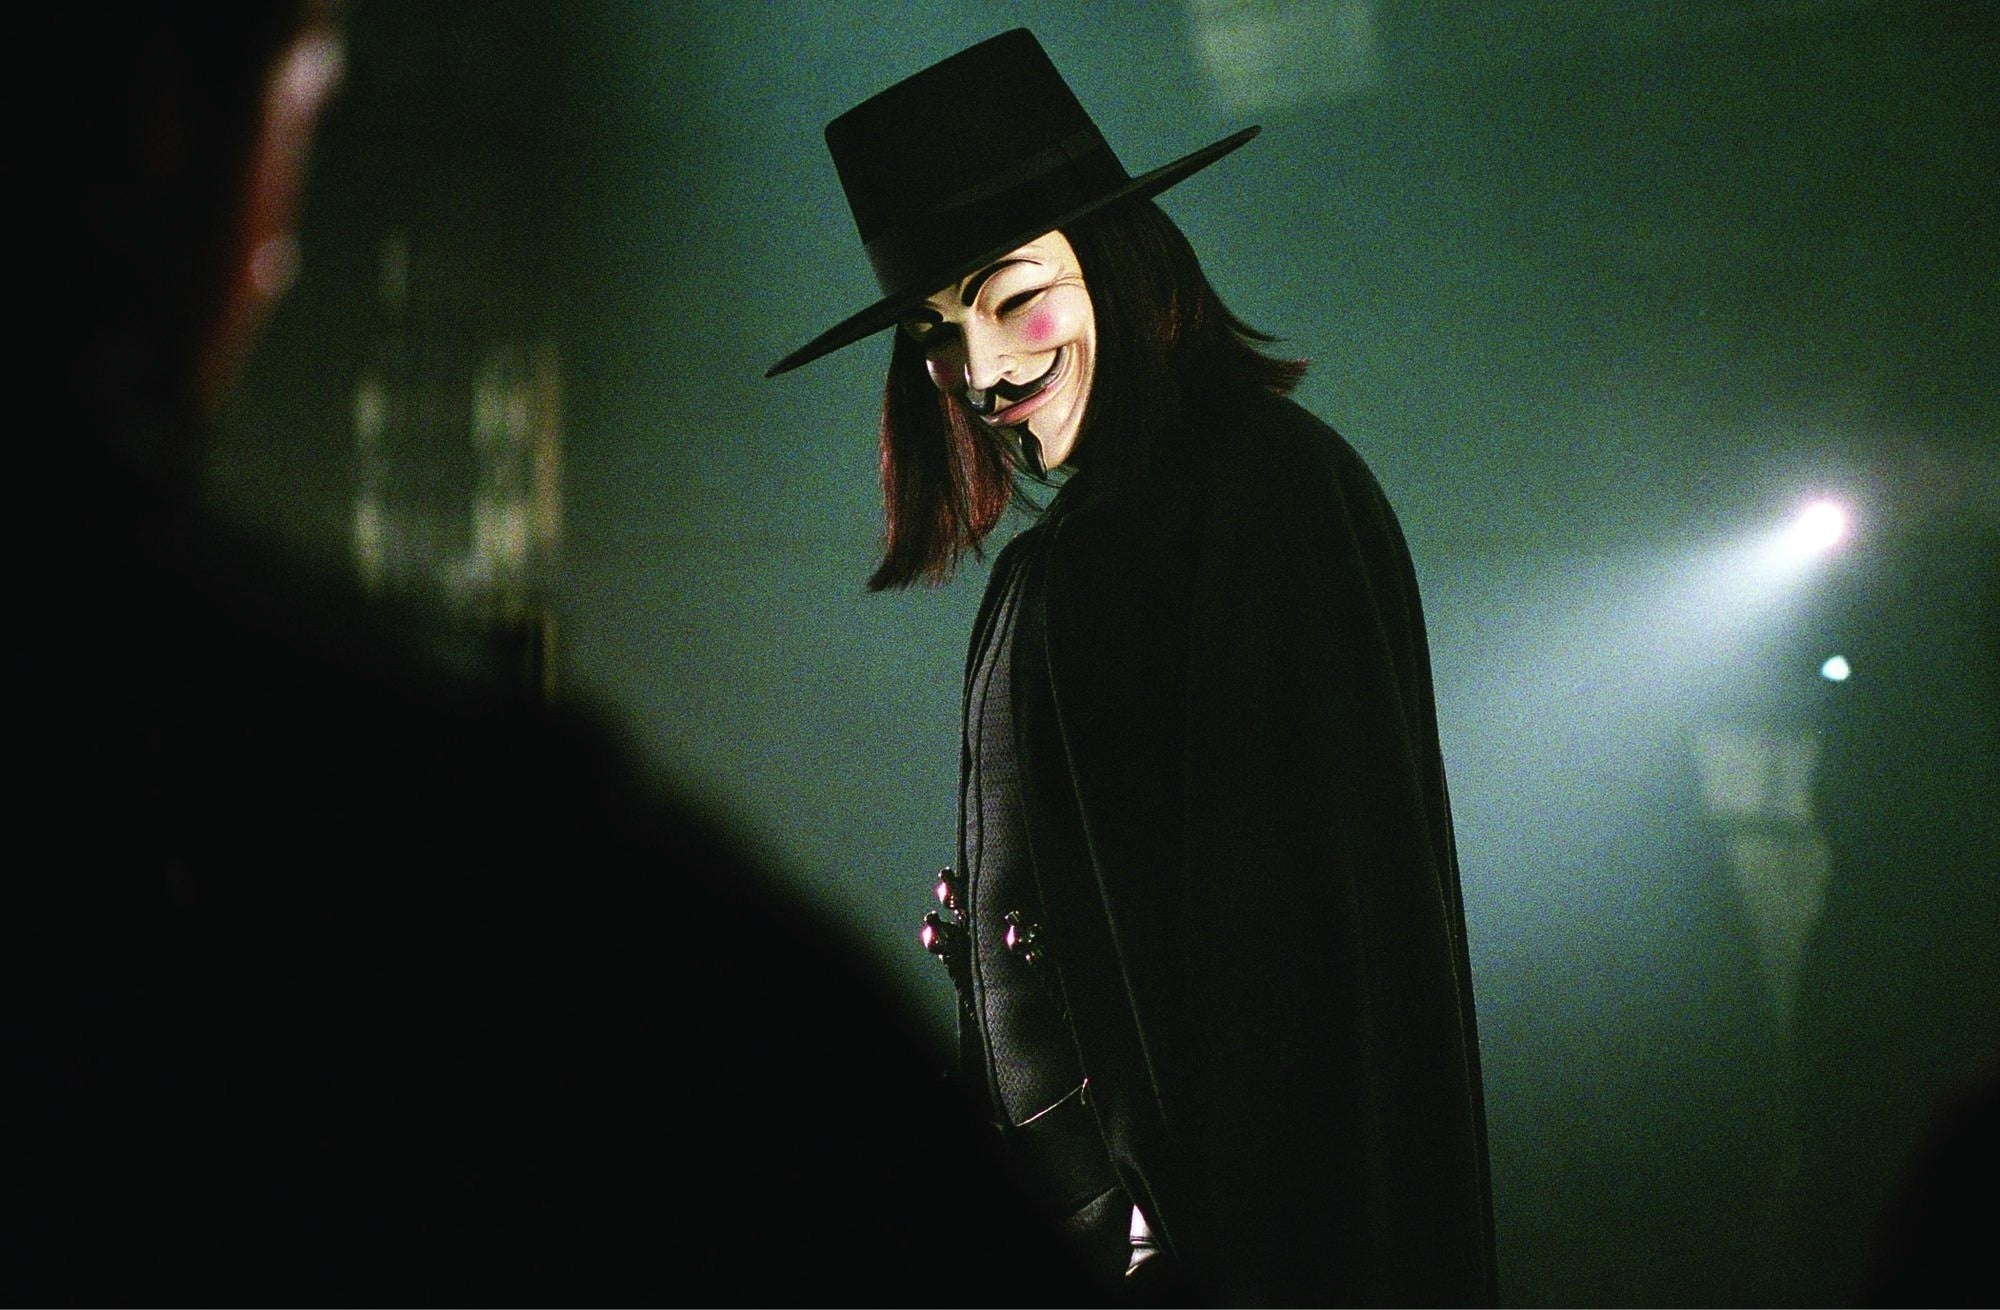 Guy Fawkes Day Remembering The Fifth Of November With V For Vendetta